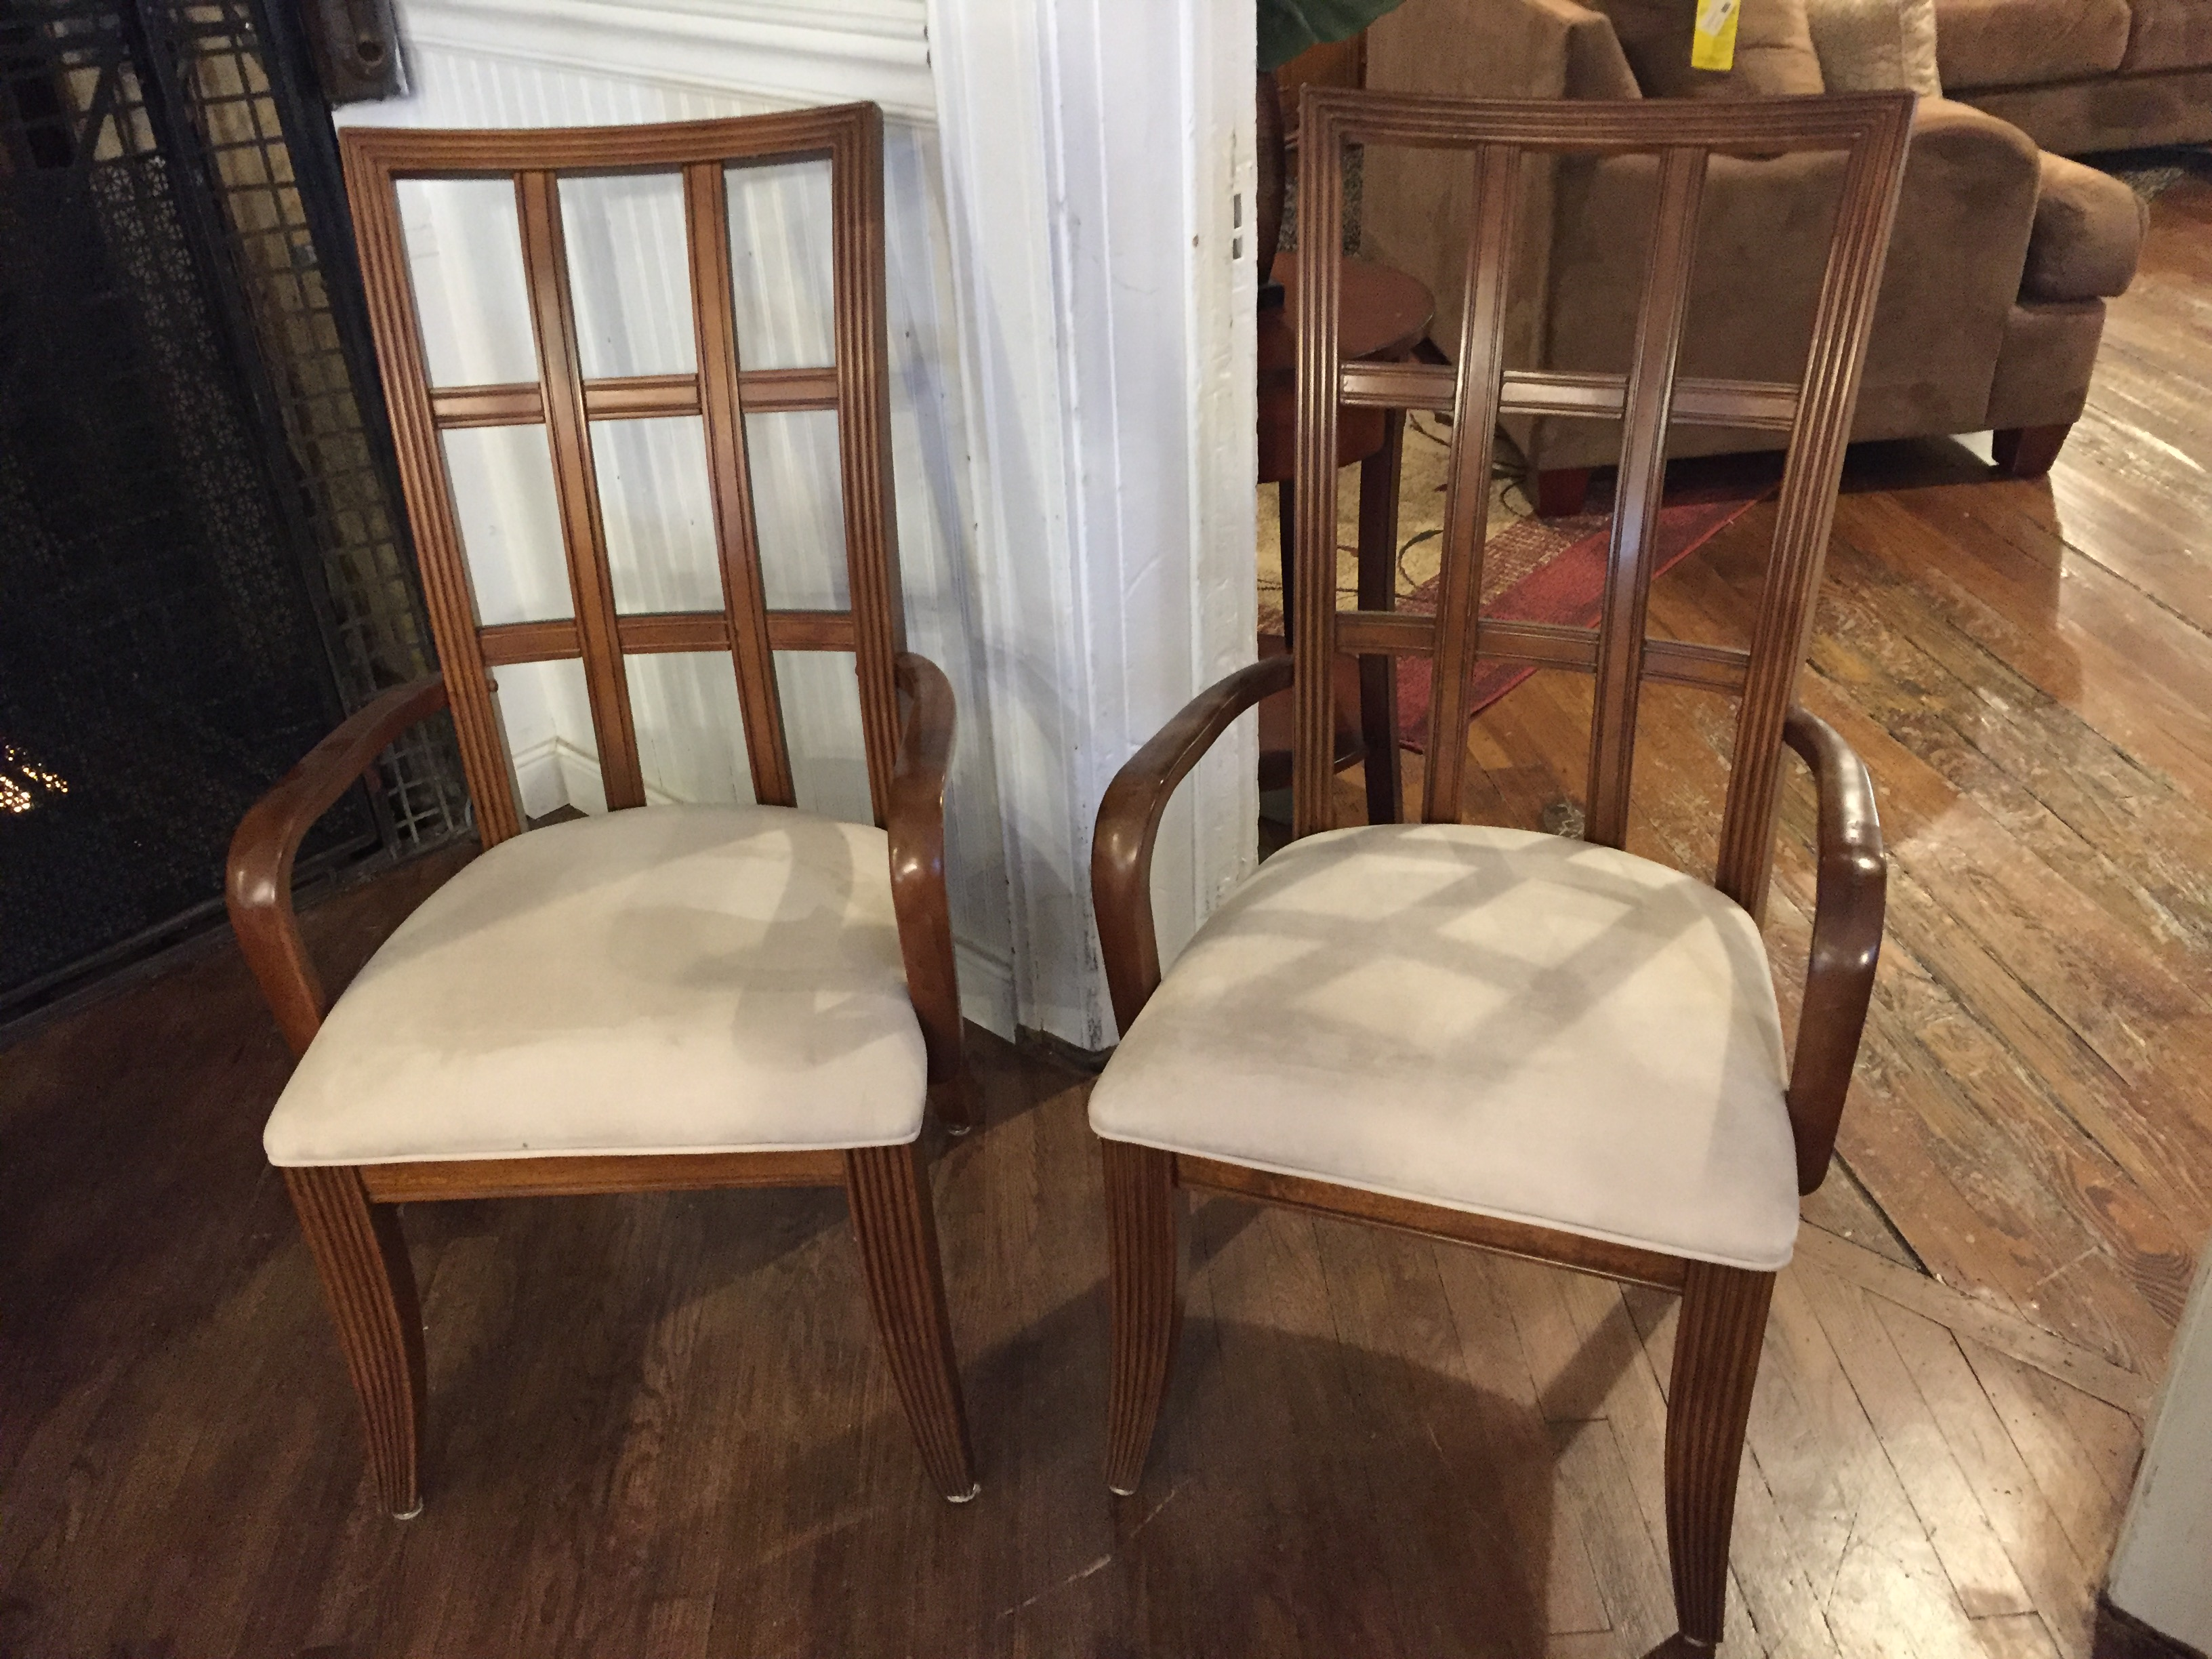 SET OF 2 LEGACY CHERRY DINING CHAIRS